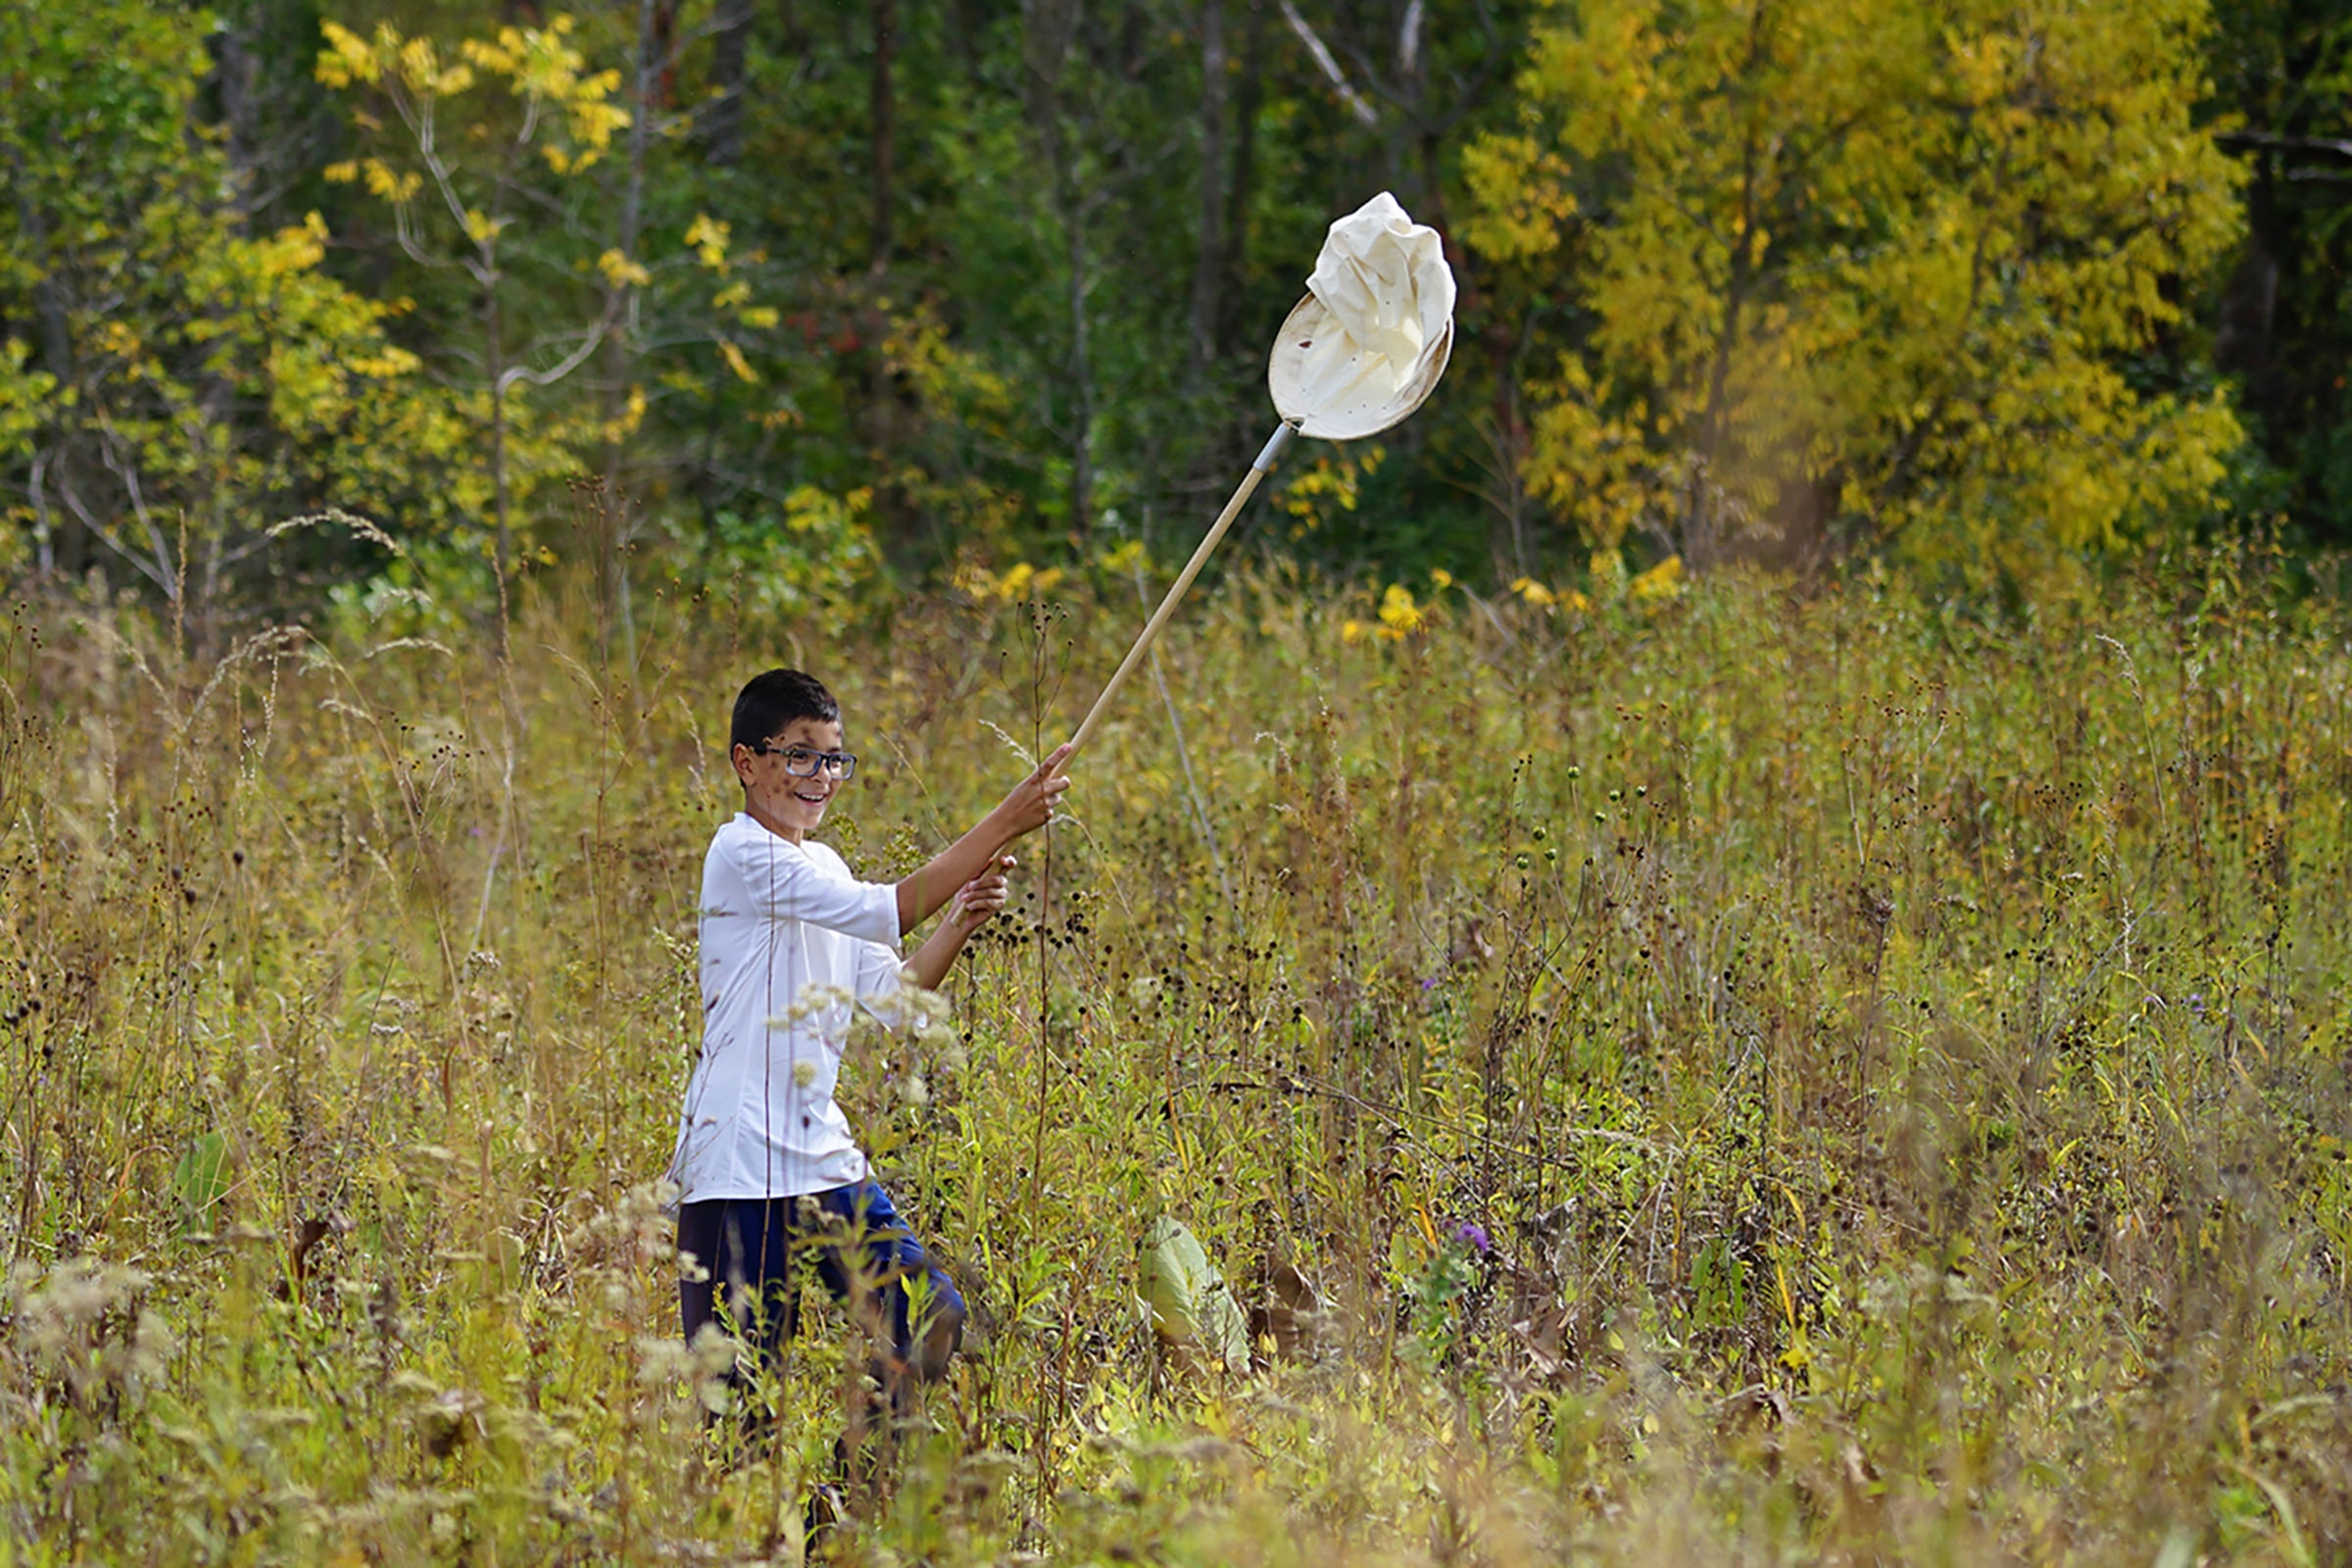 One student happily chases insects. STEM, education, outreach, people, ecology, prairie Photo: Leticia Shaddix